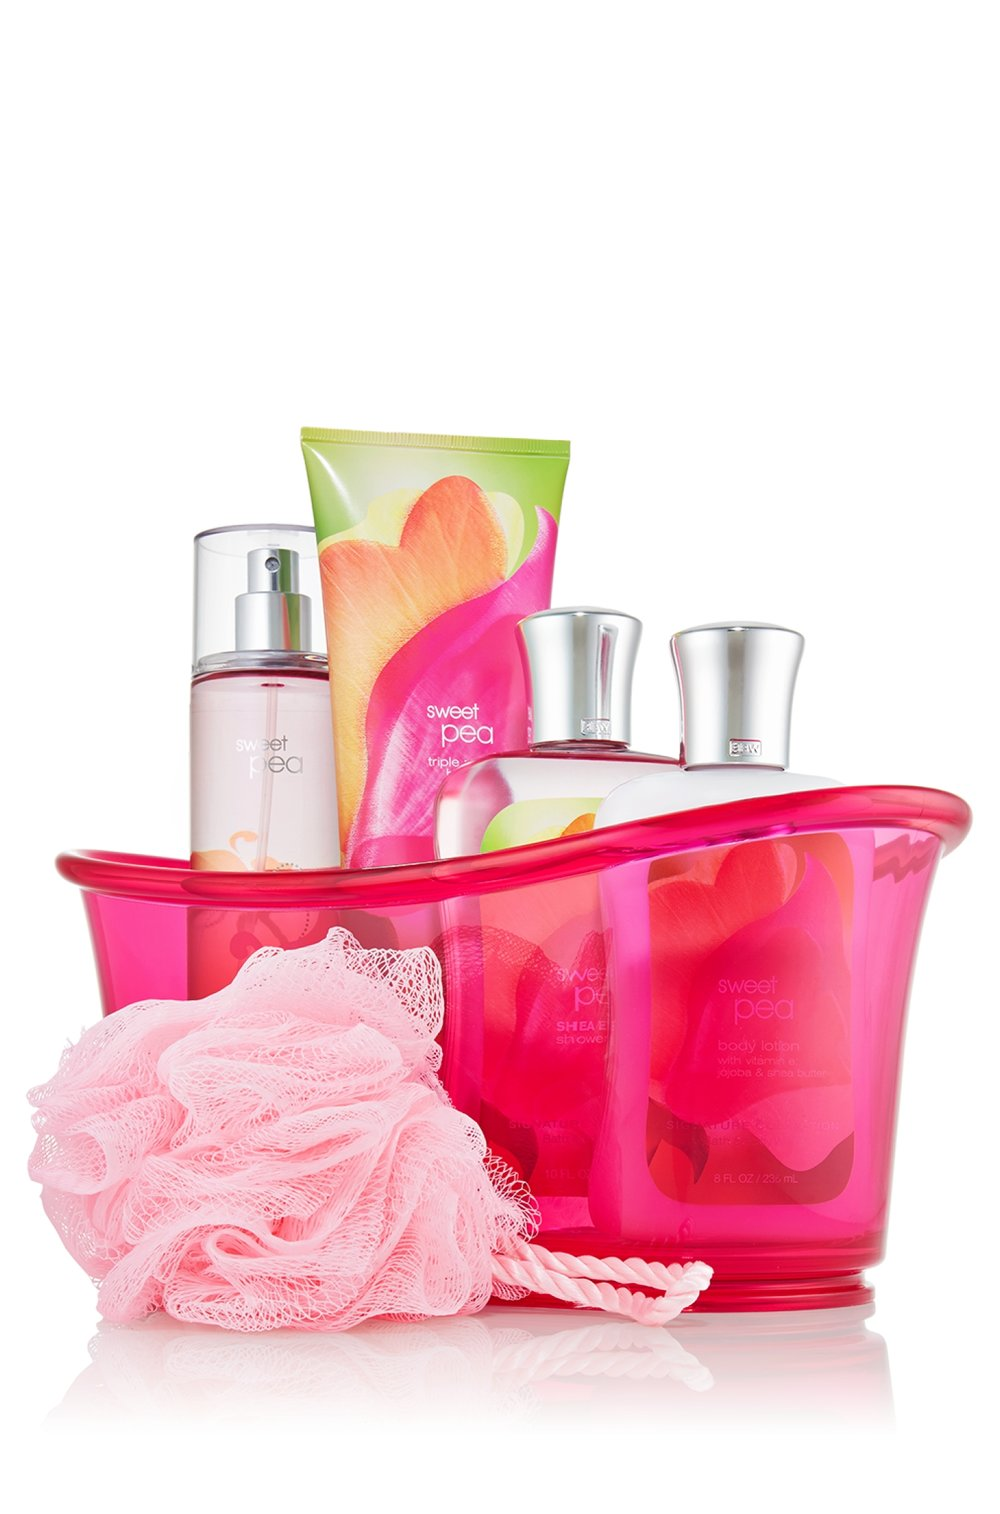 sweet-pea-splish-splash-gift-set.jpg